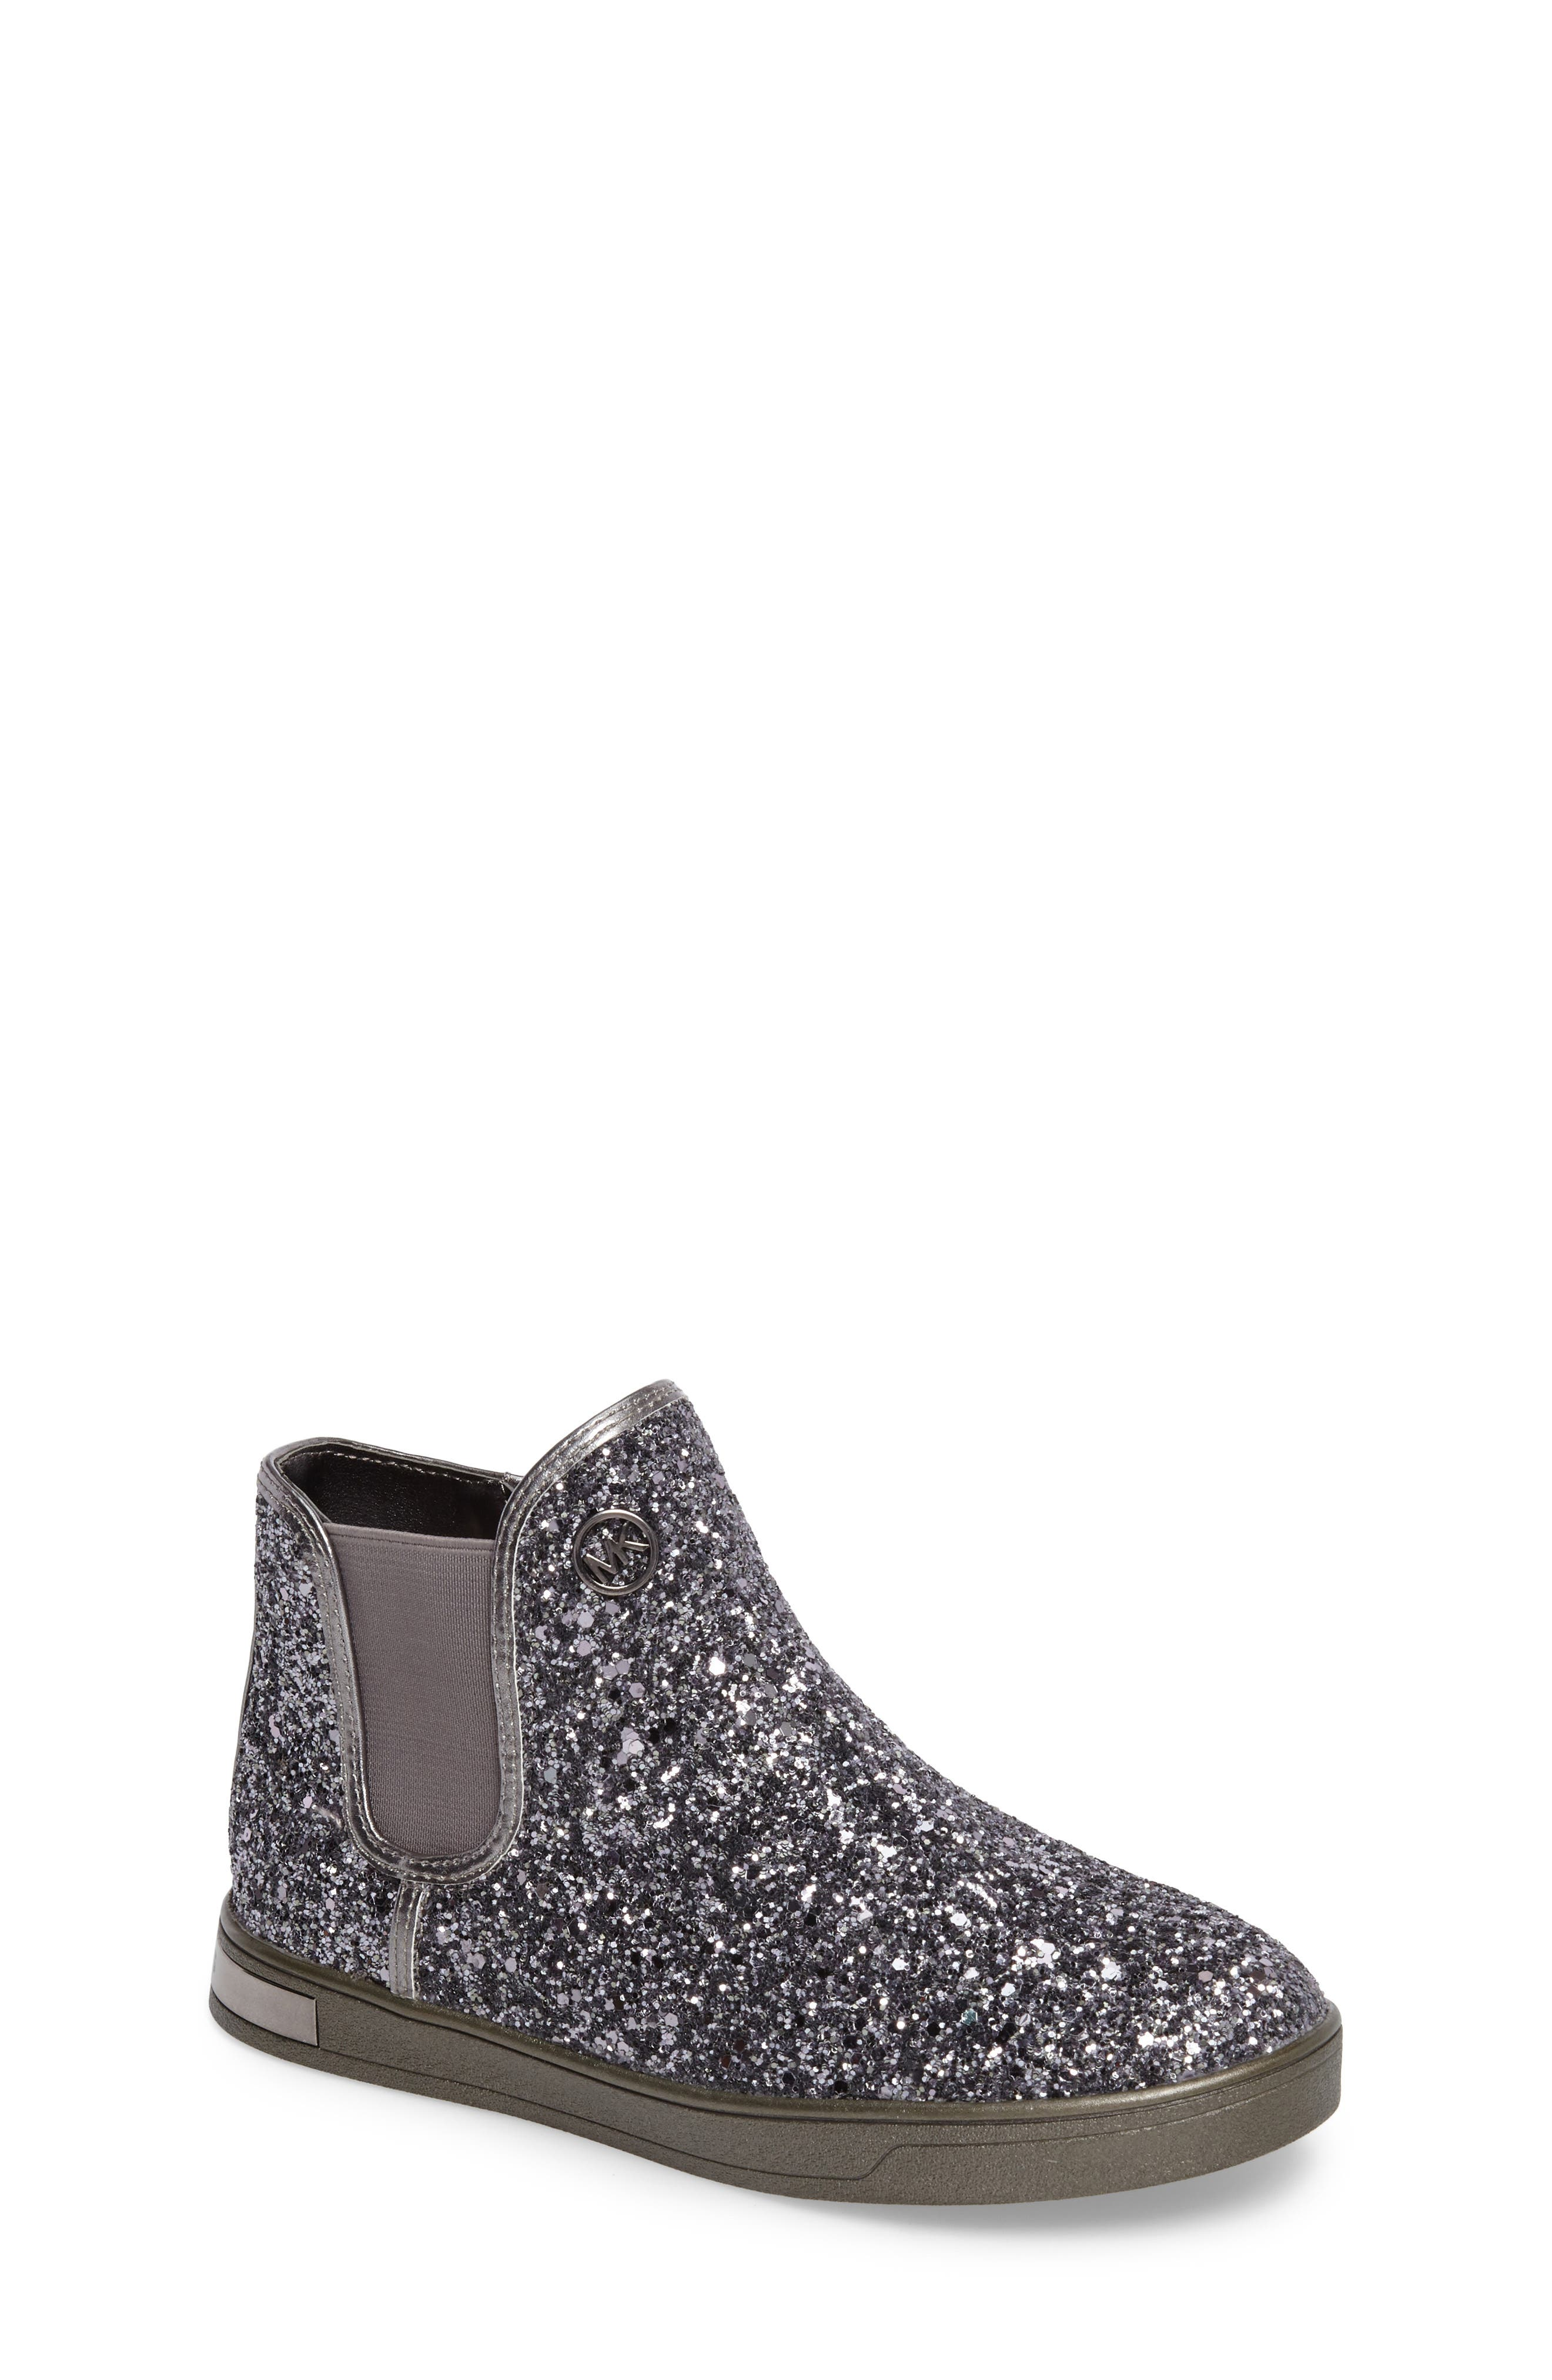 MICHAEL Michael Kors Ollie Rae Glittery Sneaker Boot (Walker, Toddler, Little Kid & Big Kid)